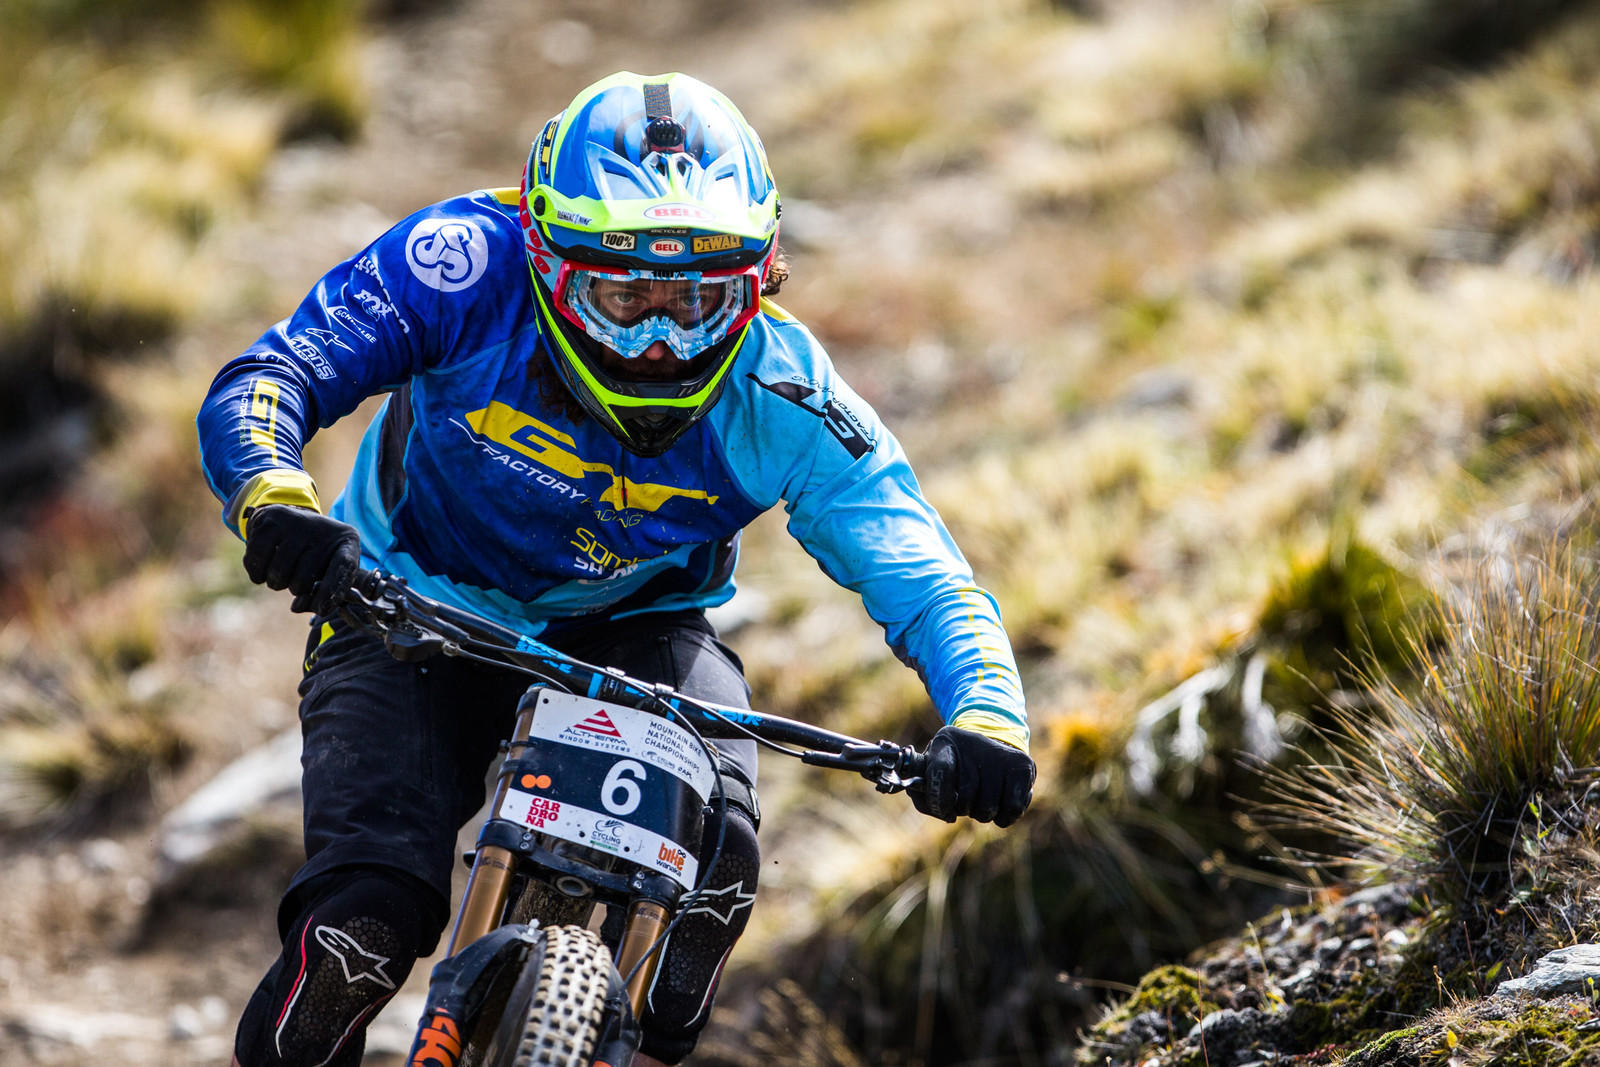 Wyn Masters - Blenki, Brook & More - 2018 NZ National Champs Day 1 - Mountain Biking Pictures - Vital MTB